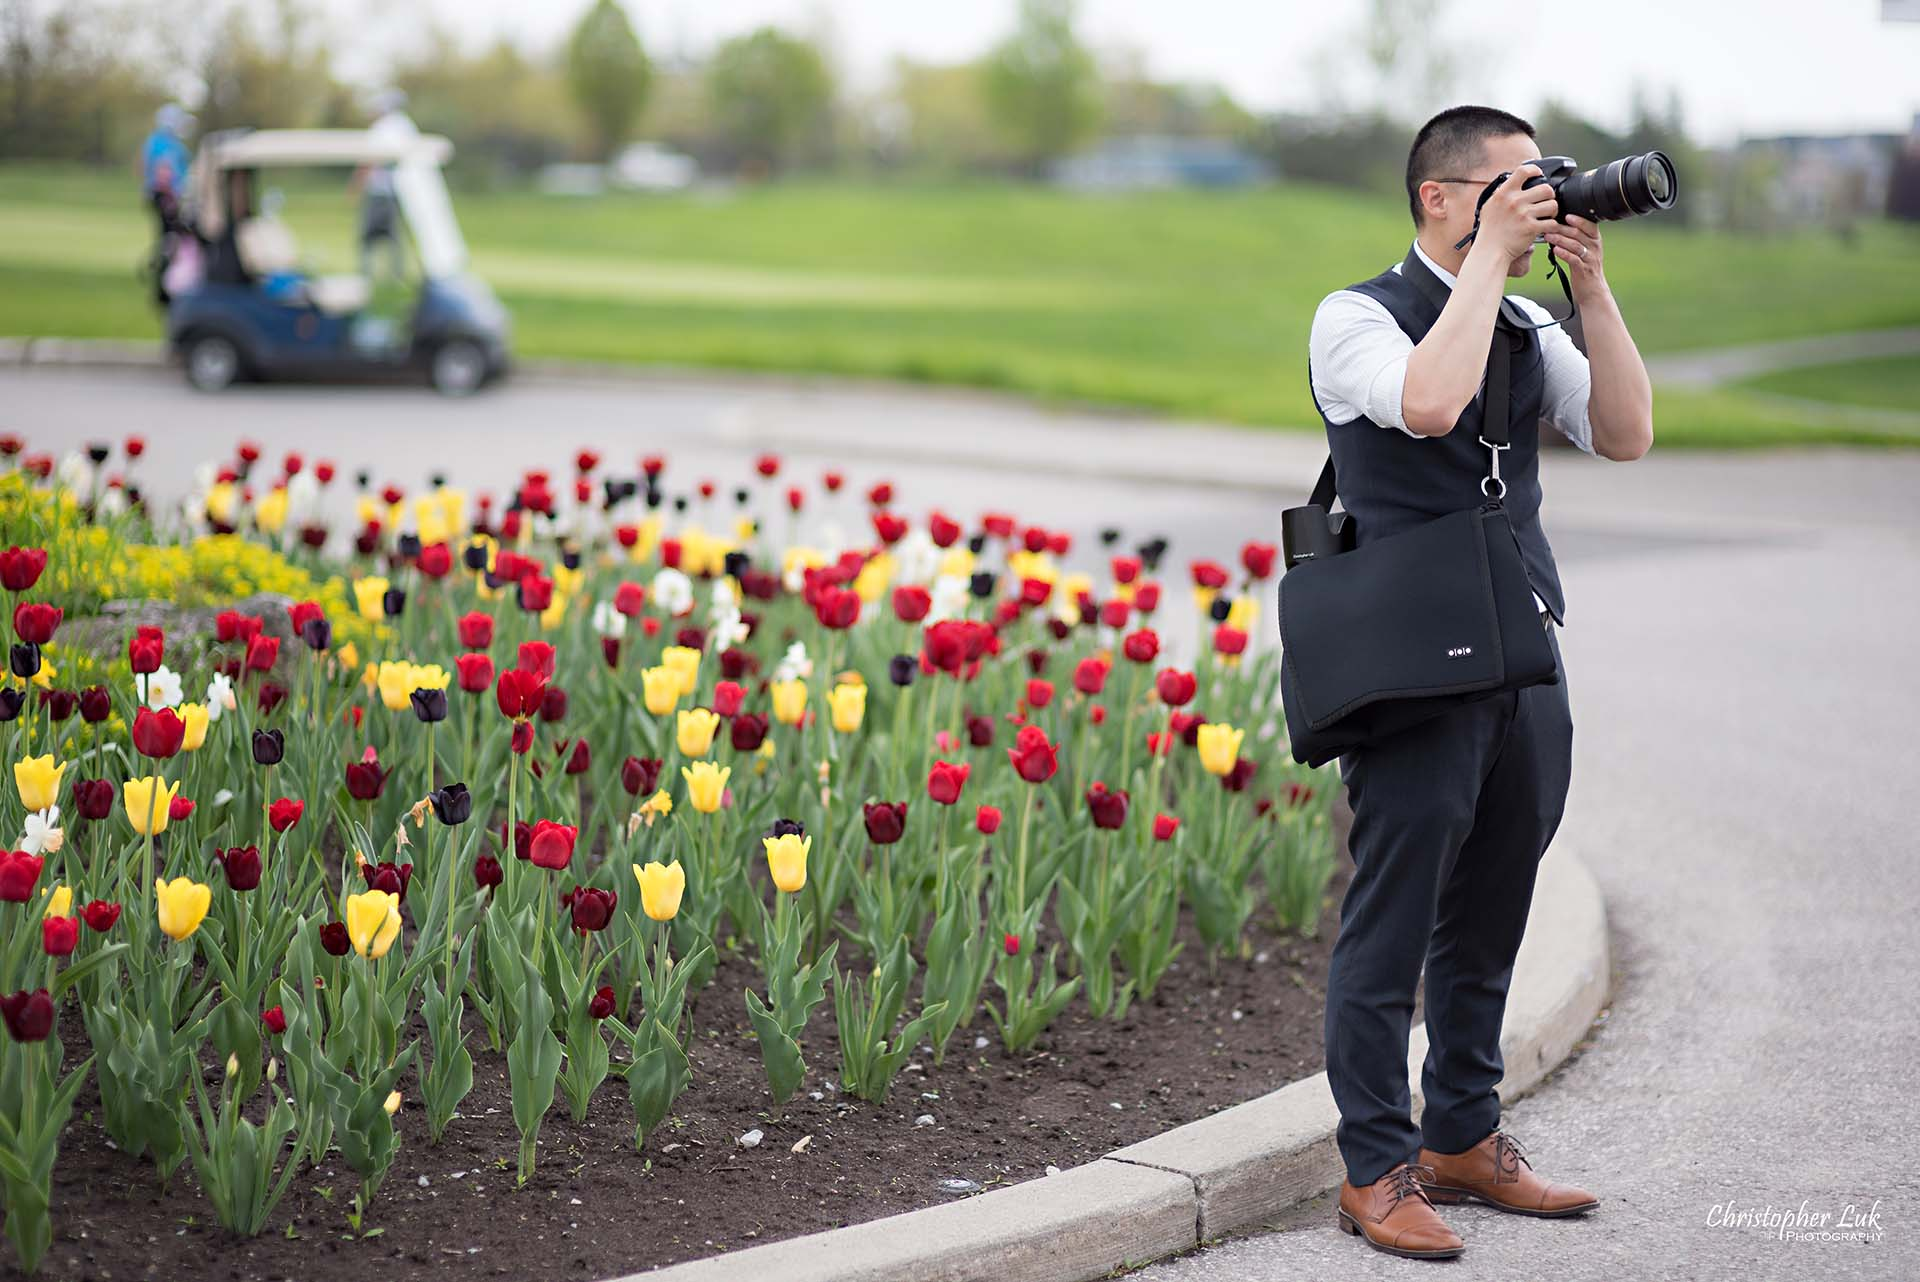 Christopher Luk Toronto Wedding Photographer Behind the Scenes Angus Glen Golf Club Markham Victoria Room Entrance Tulips